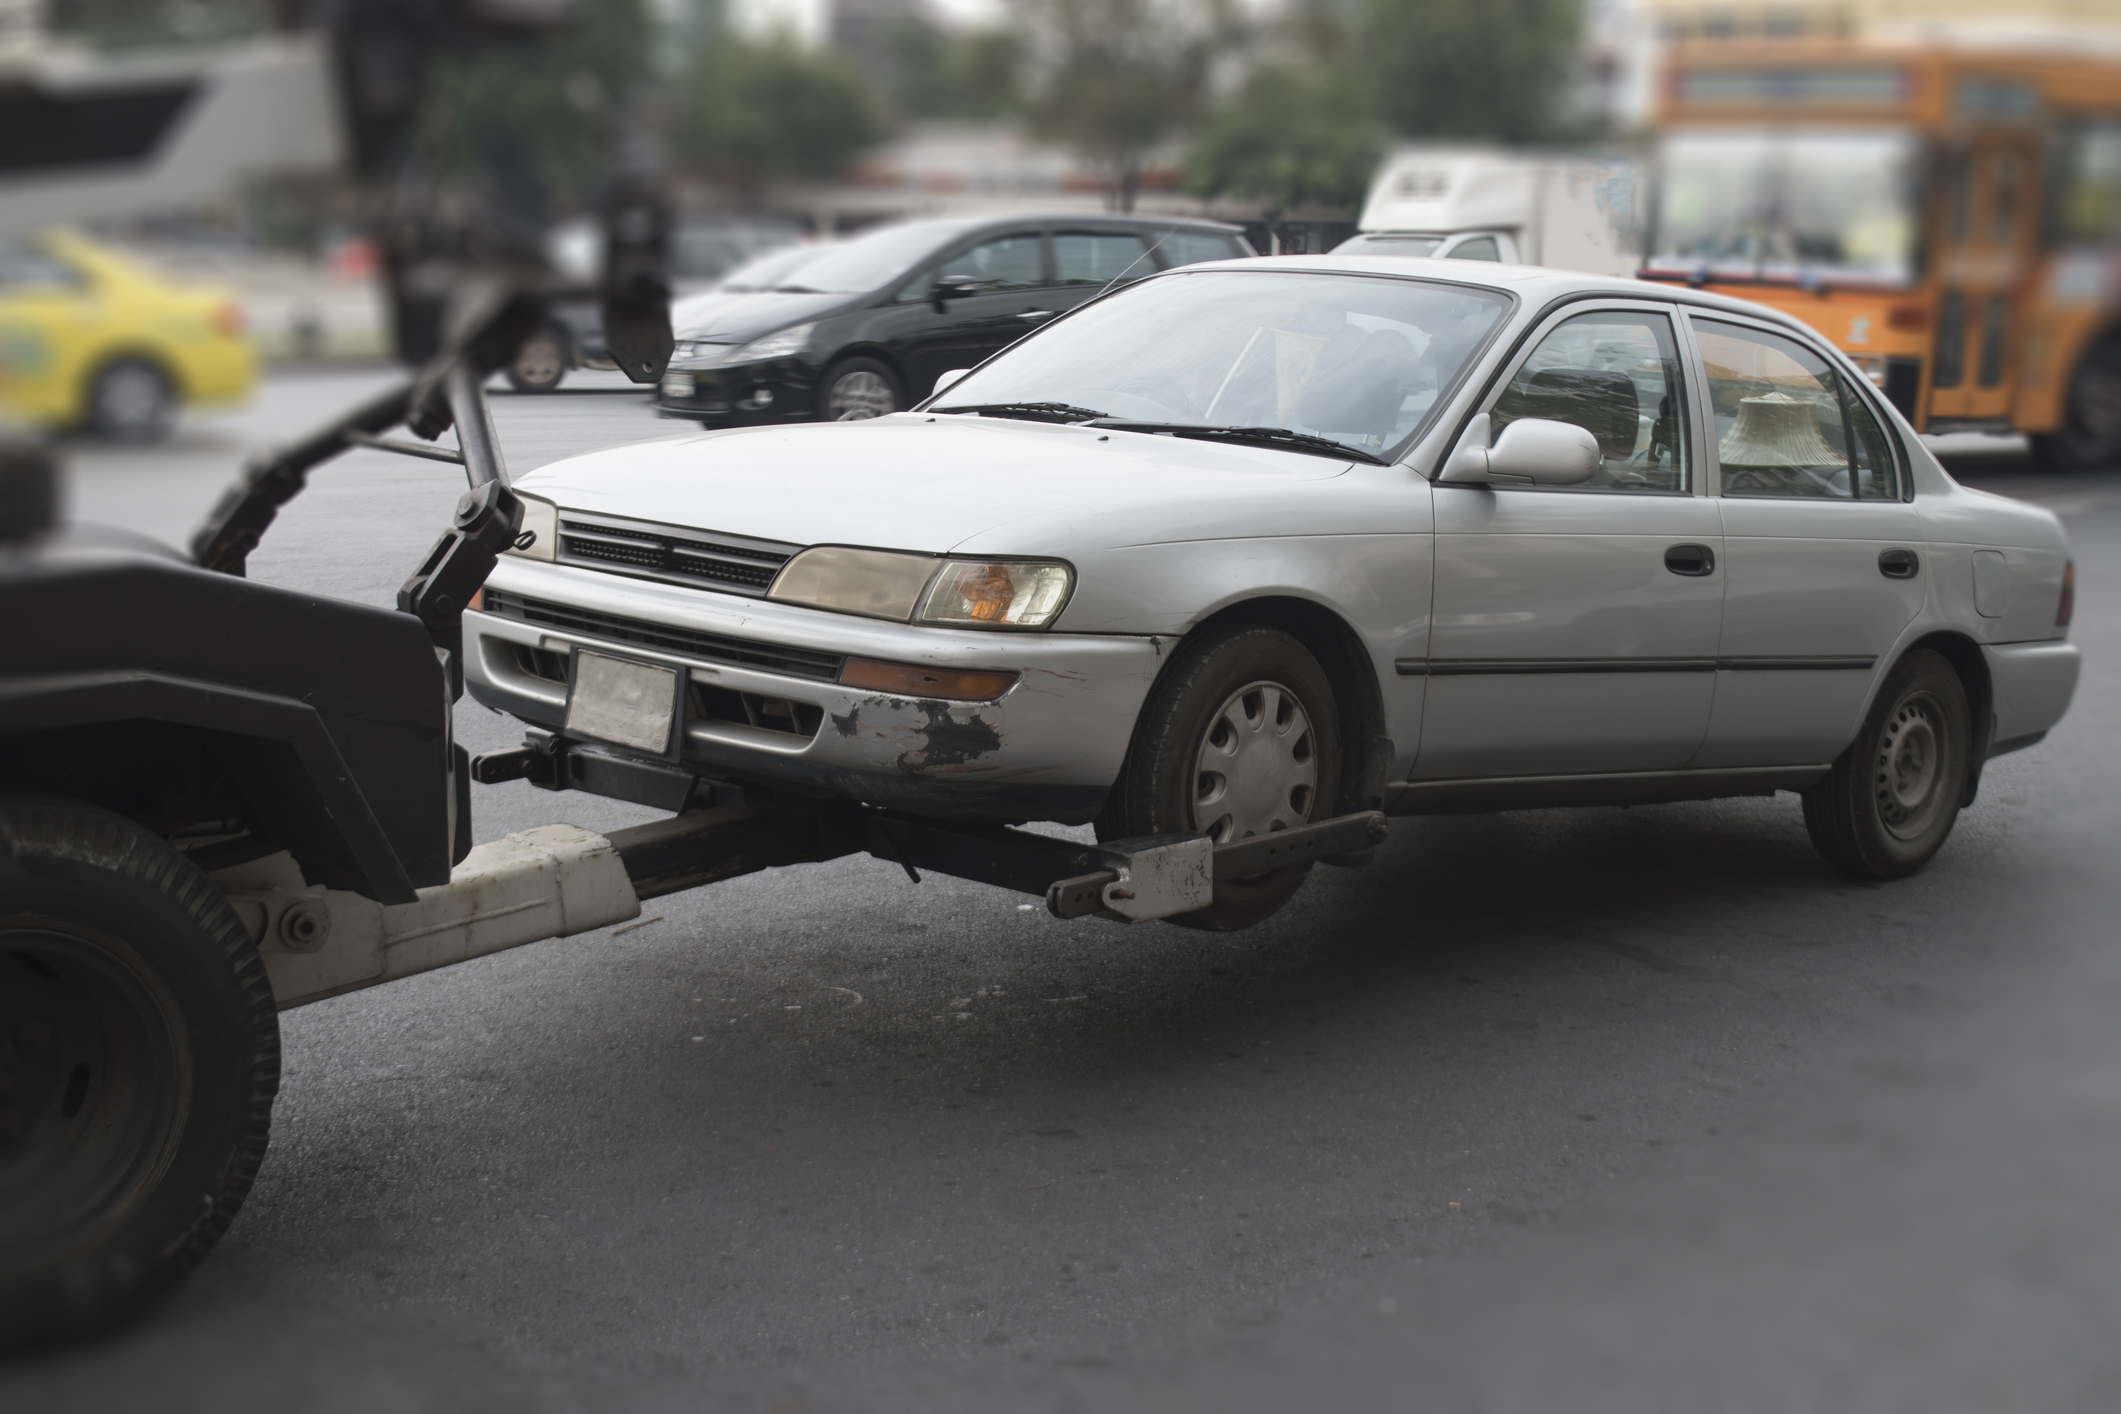 Free Unwanted Towing Melbourne - Call 0410726726